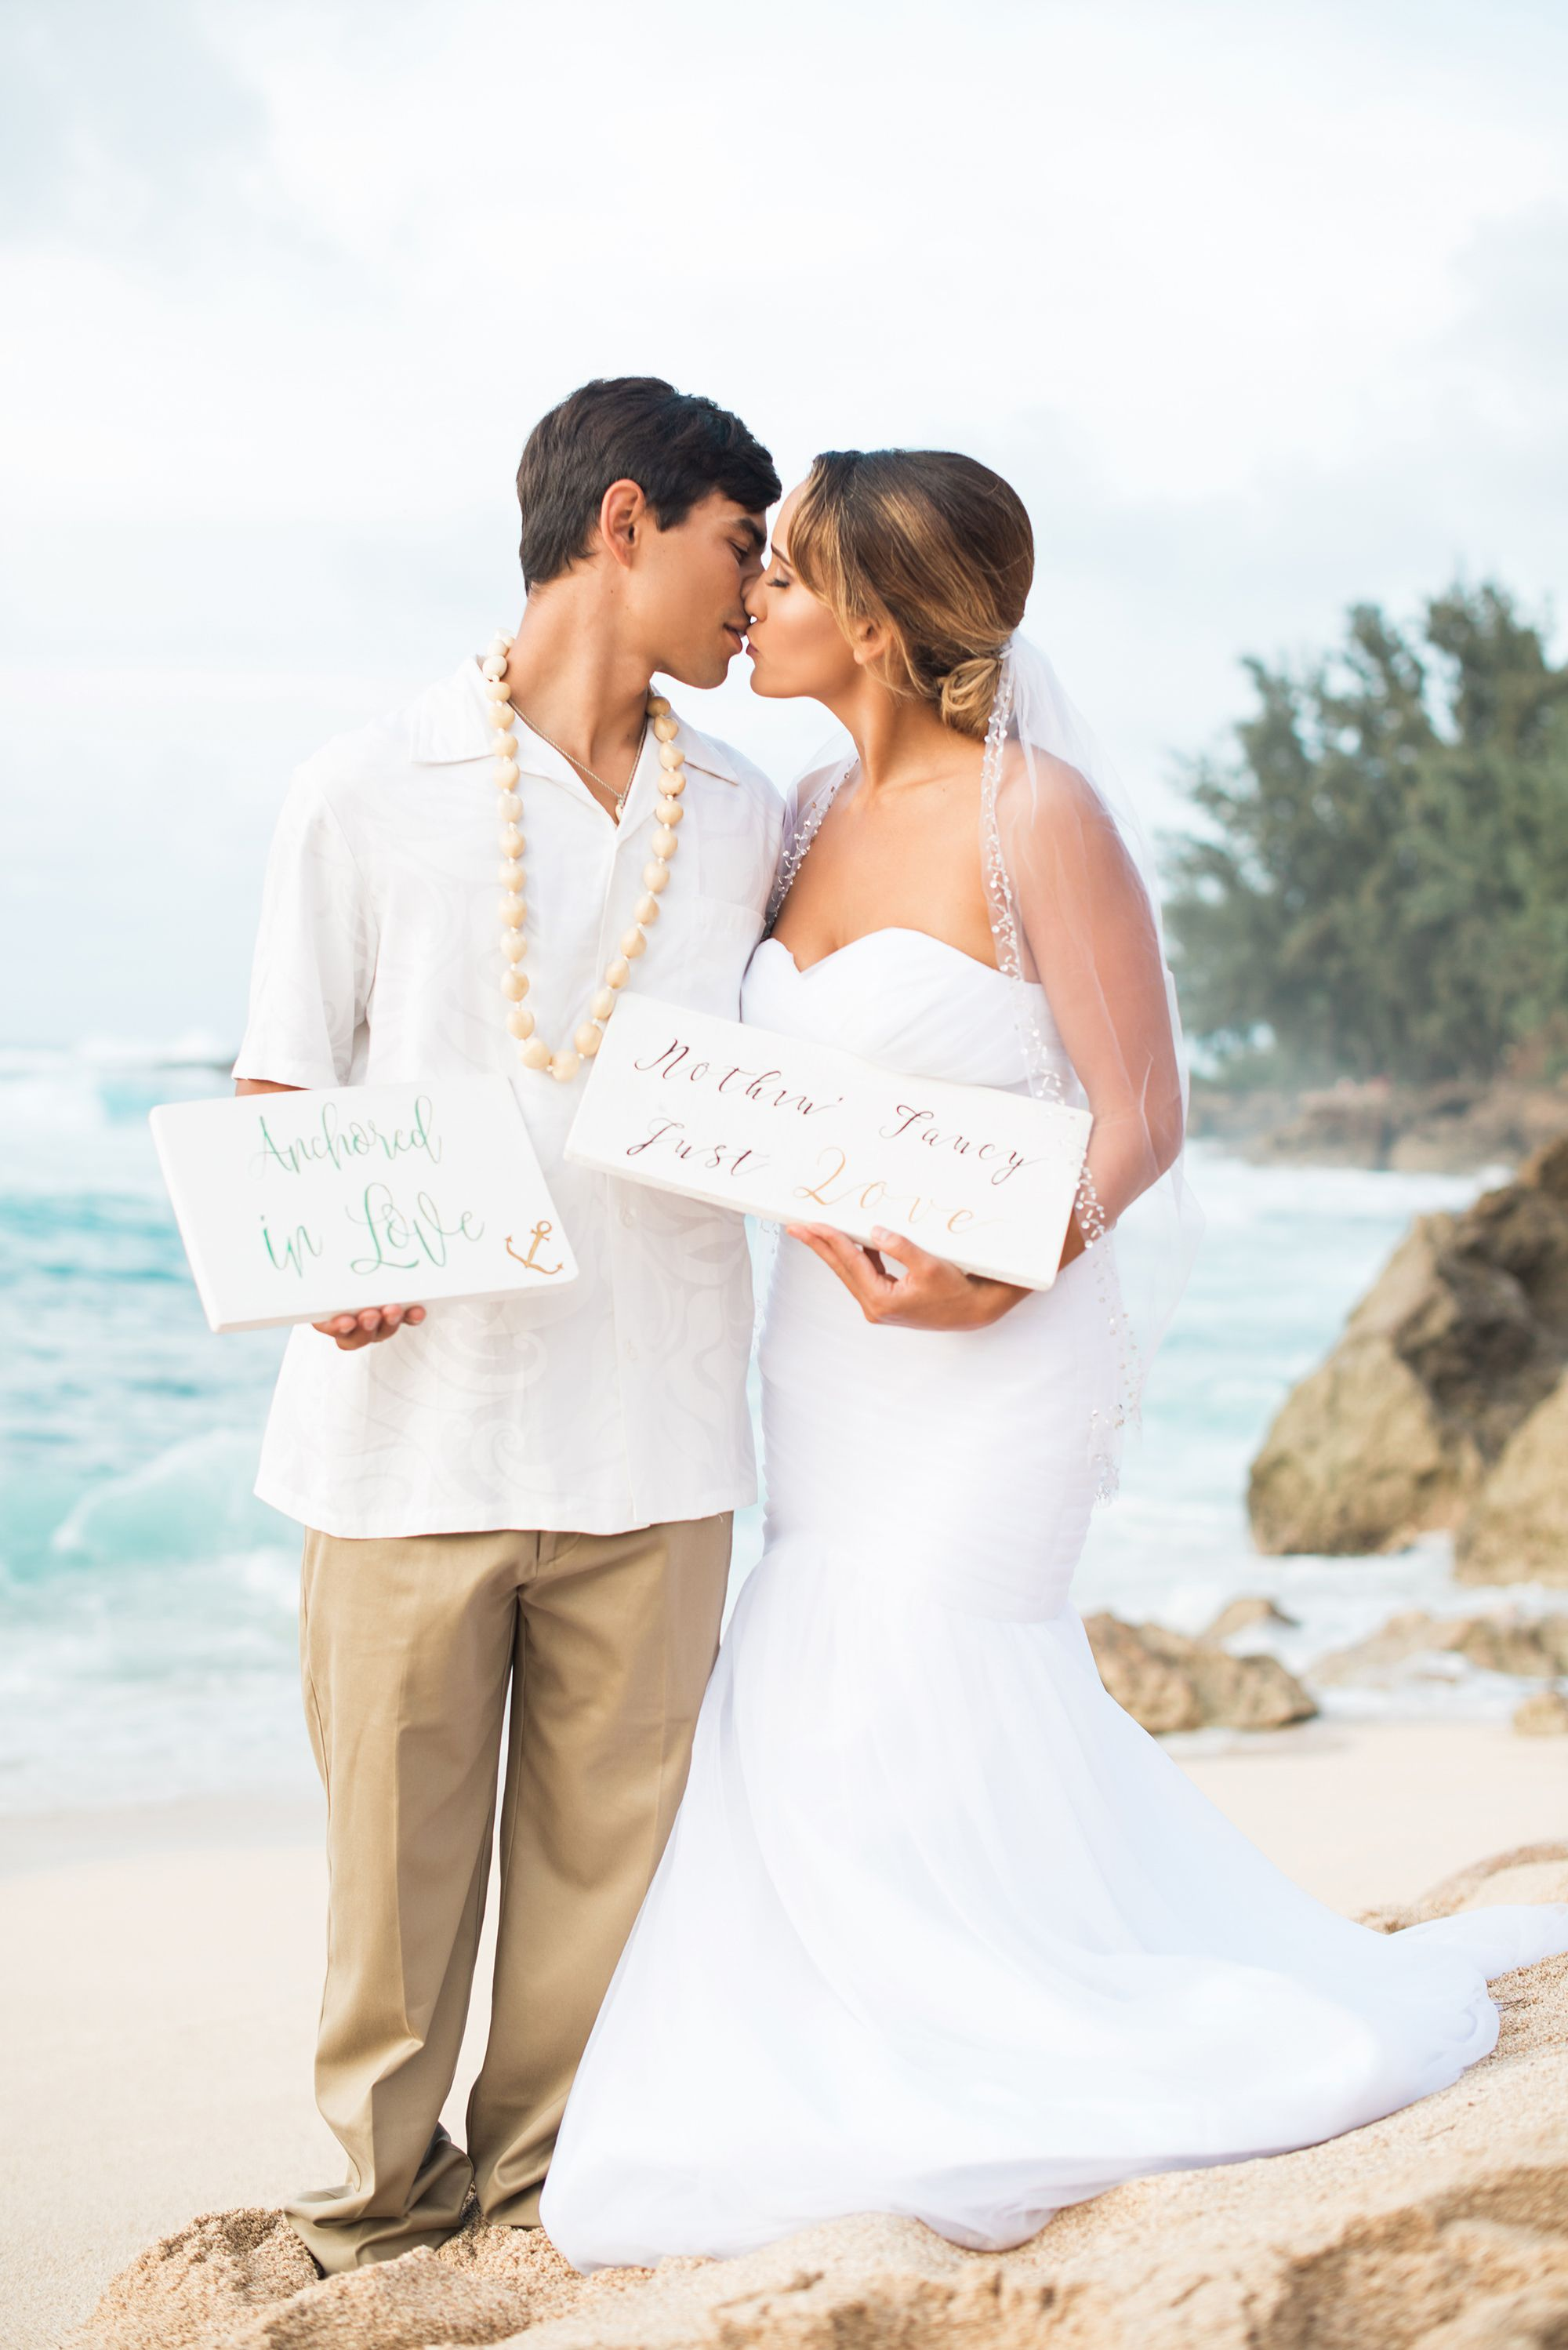 Romantic Elopement in Hawaii with Marianne Blackham Photography